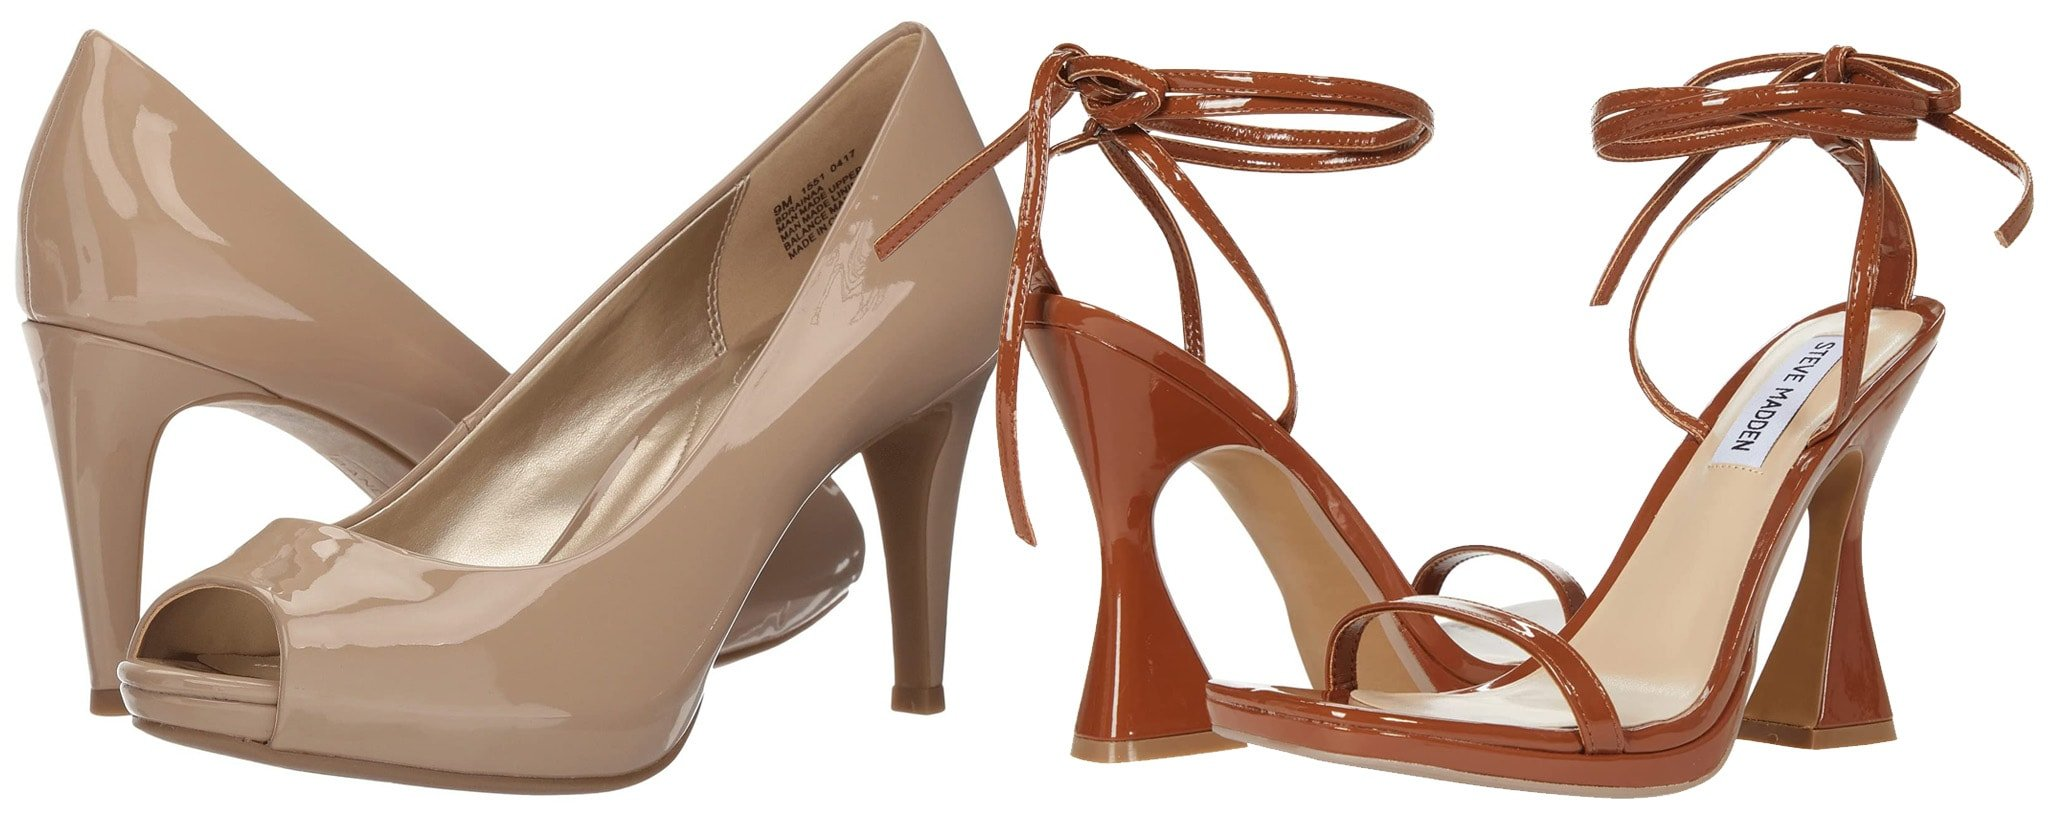 Polyurethane material looks similar to patent leather but easier to maintain and less expensive